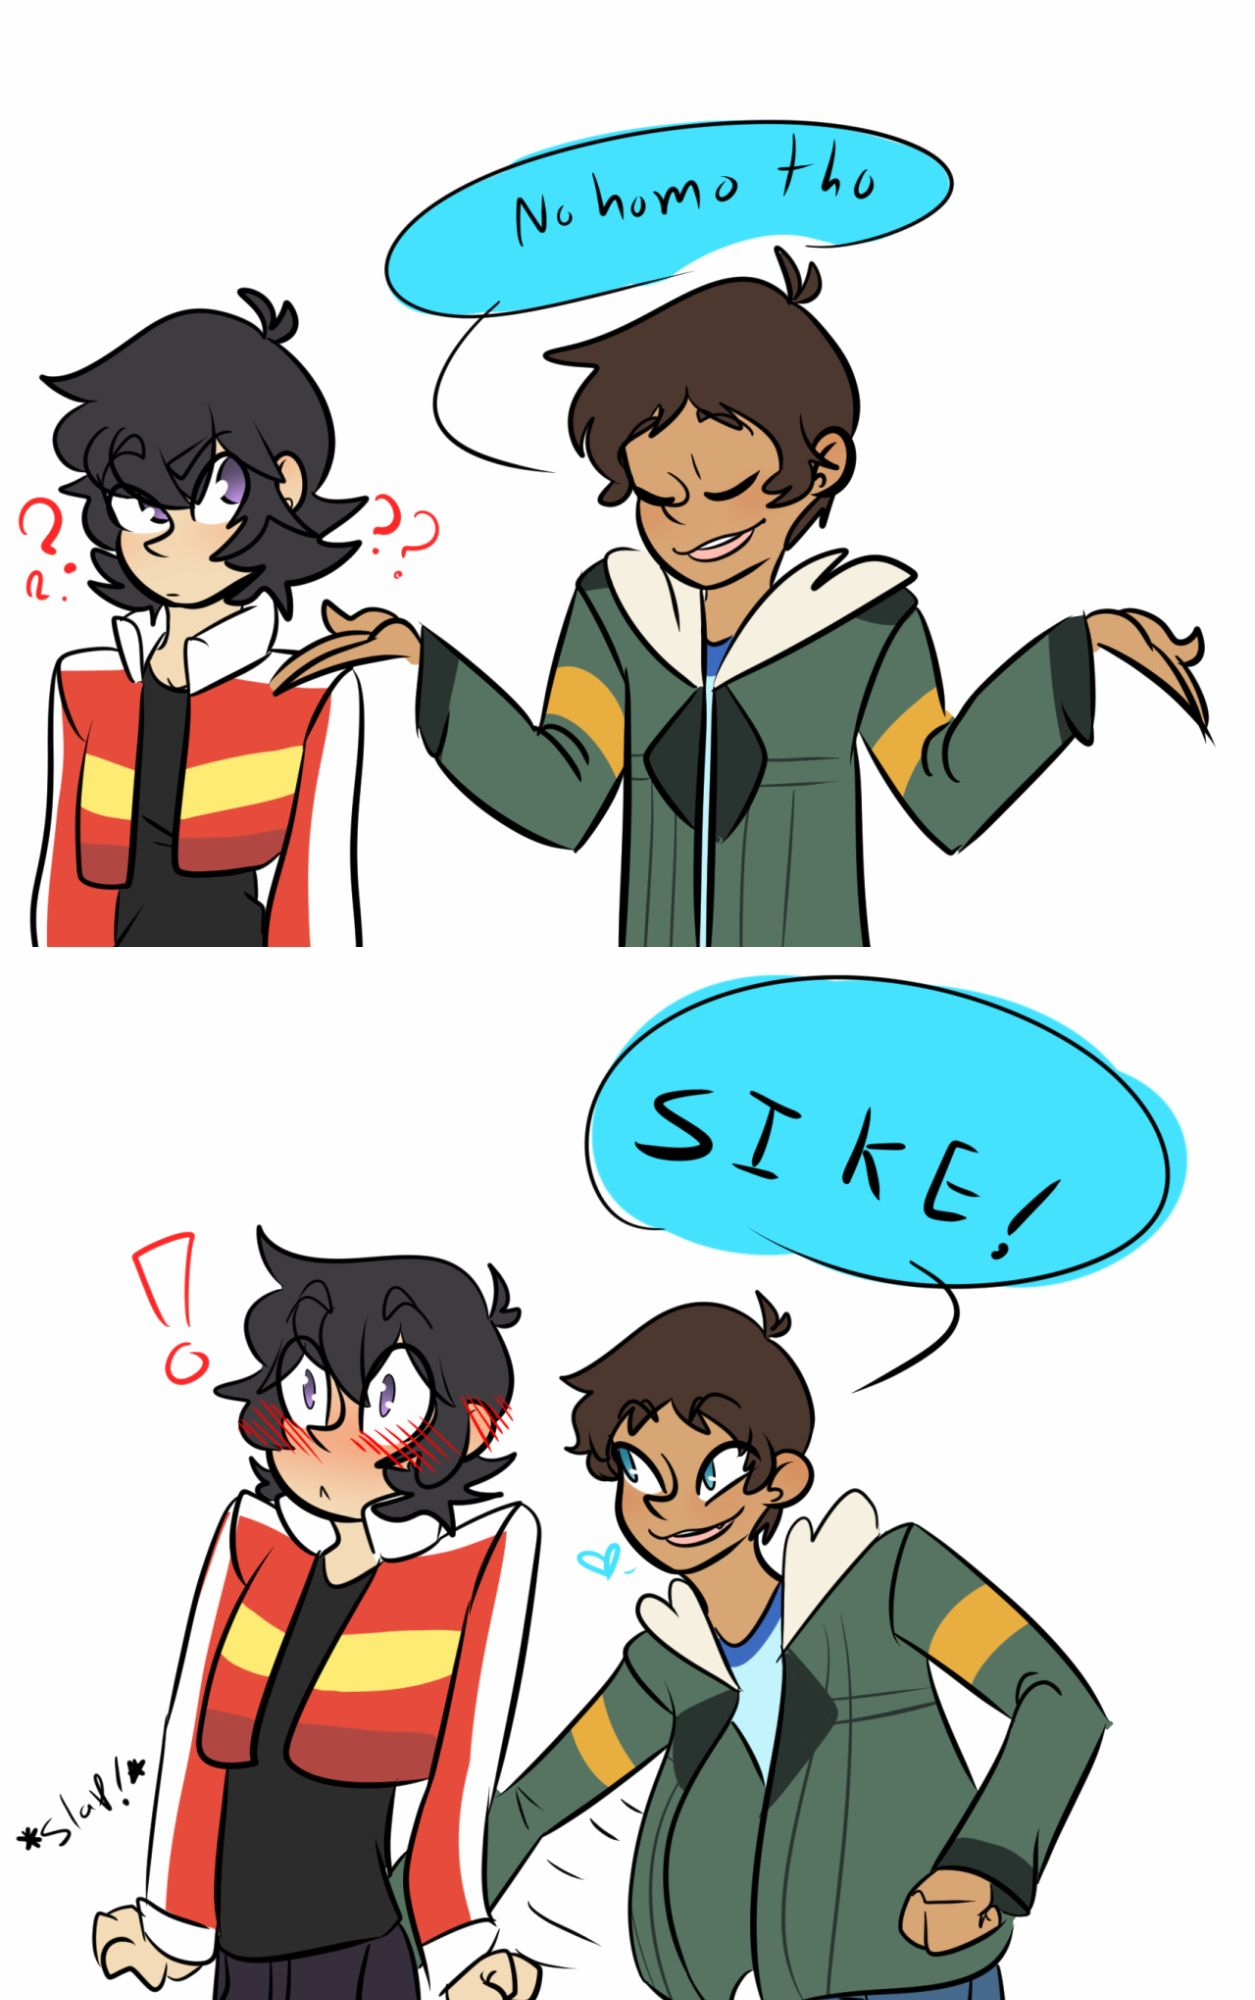 Lance: no homo      SIKE! * slaps Keith's butt* Keith: AAHH